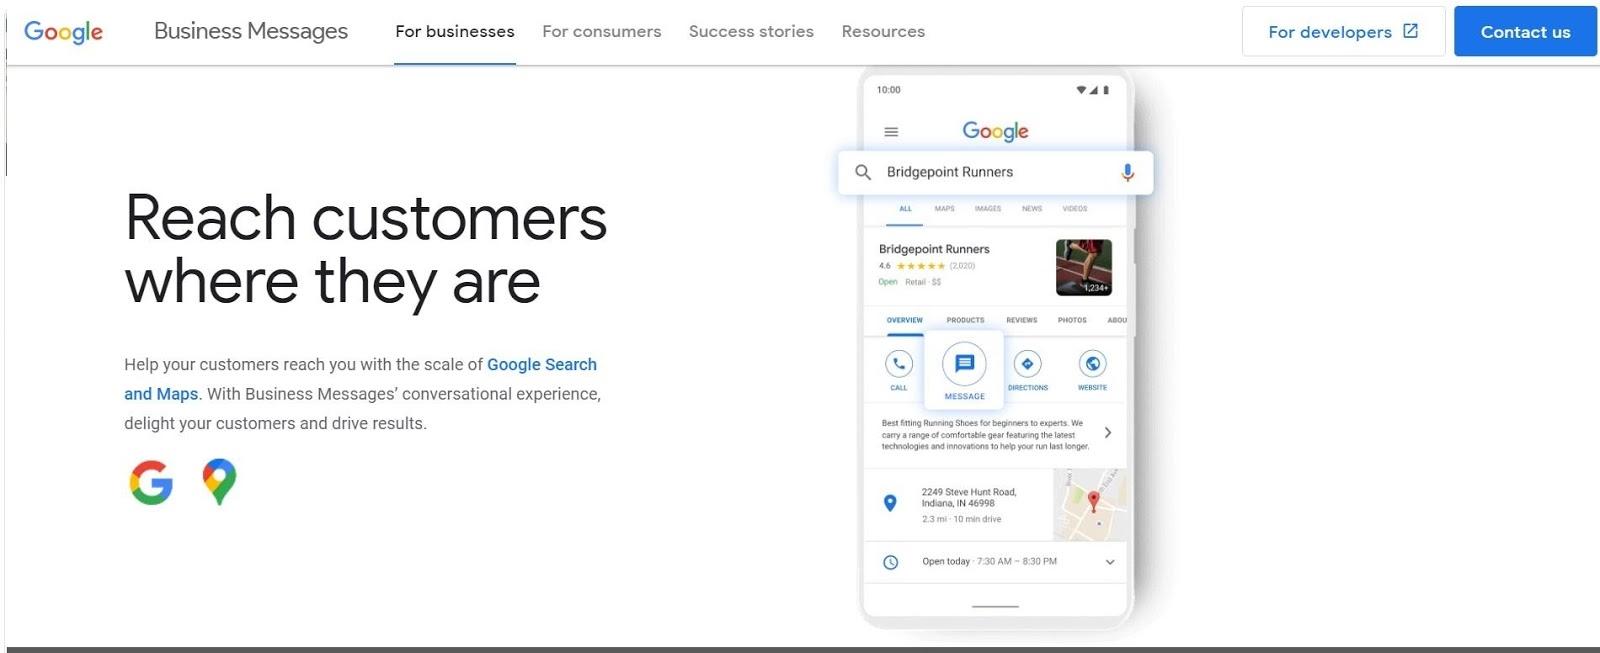 Google My Business Optimization: 5 Tips for an Impactful Profile